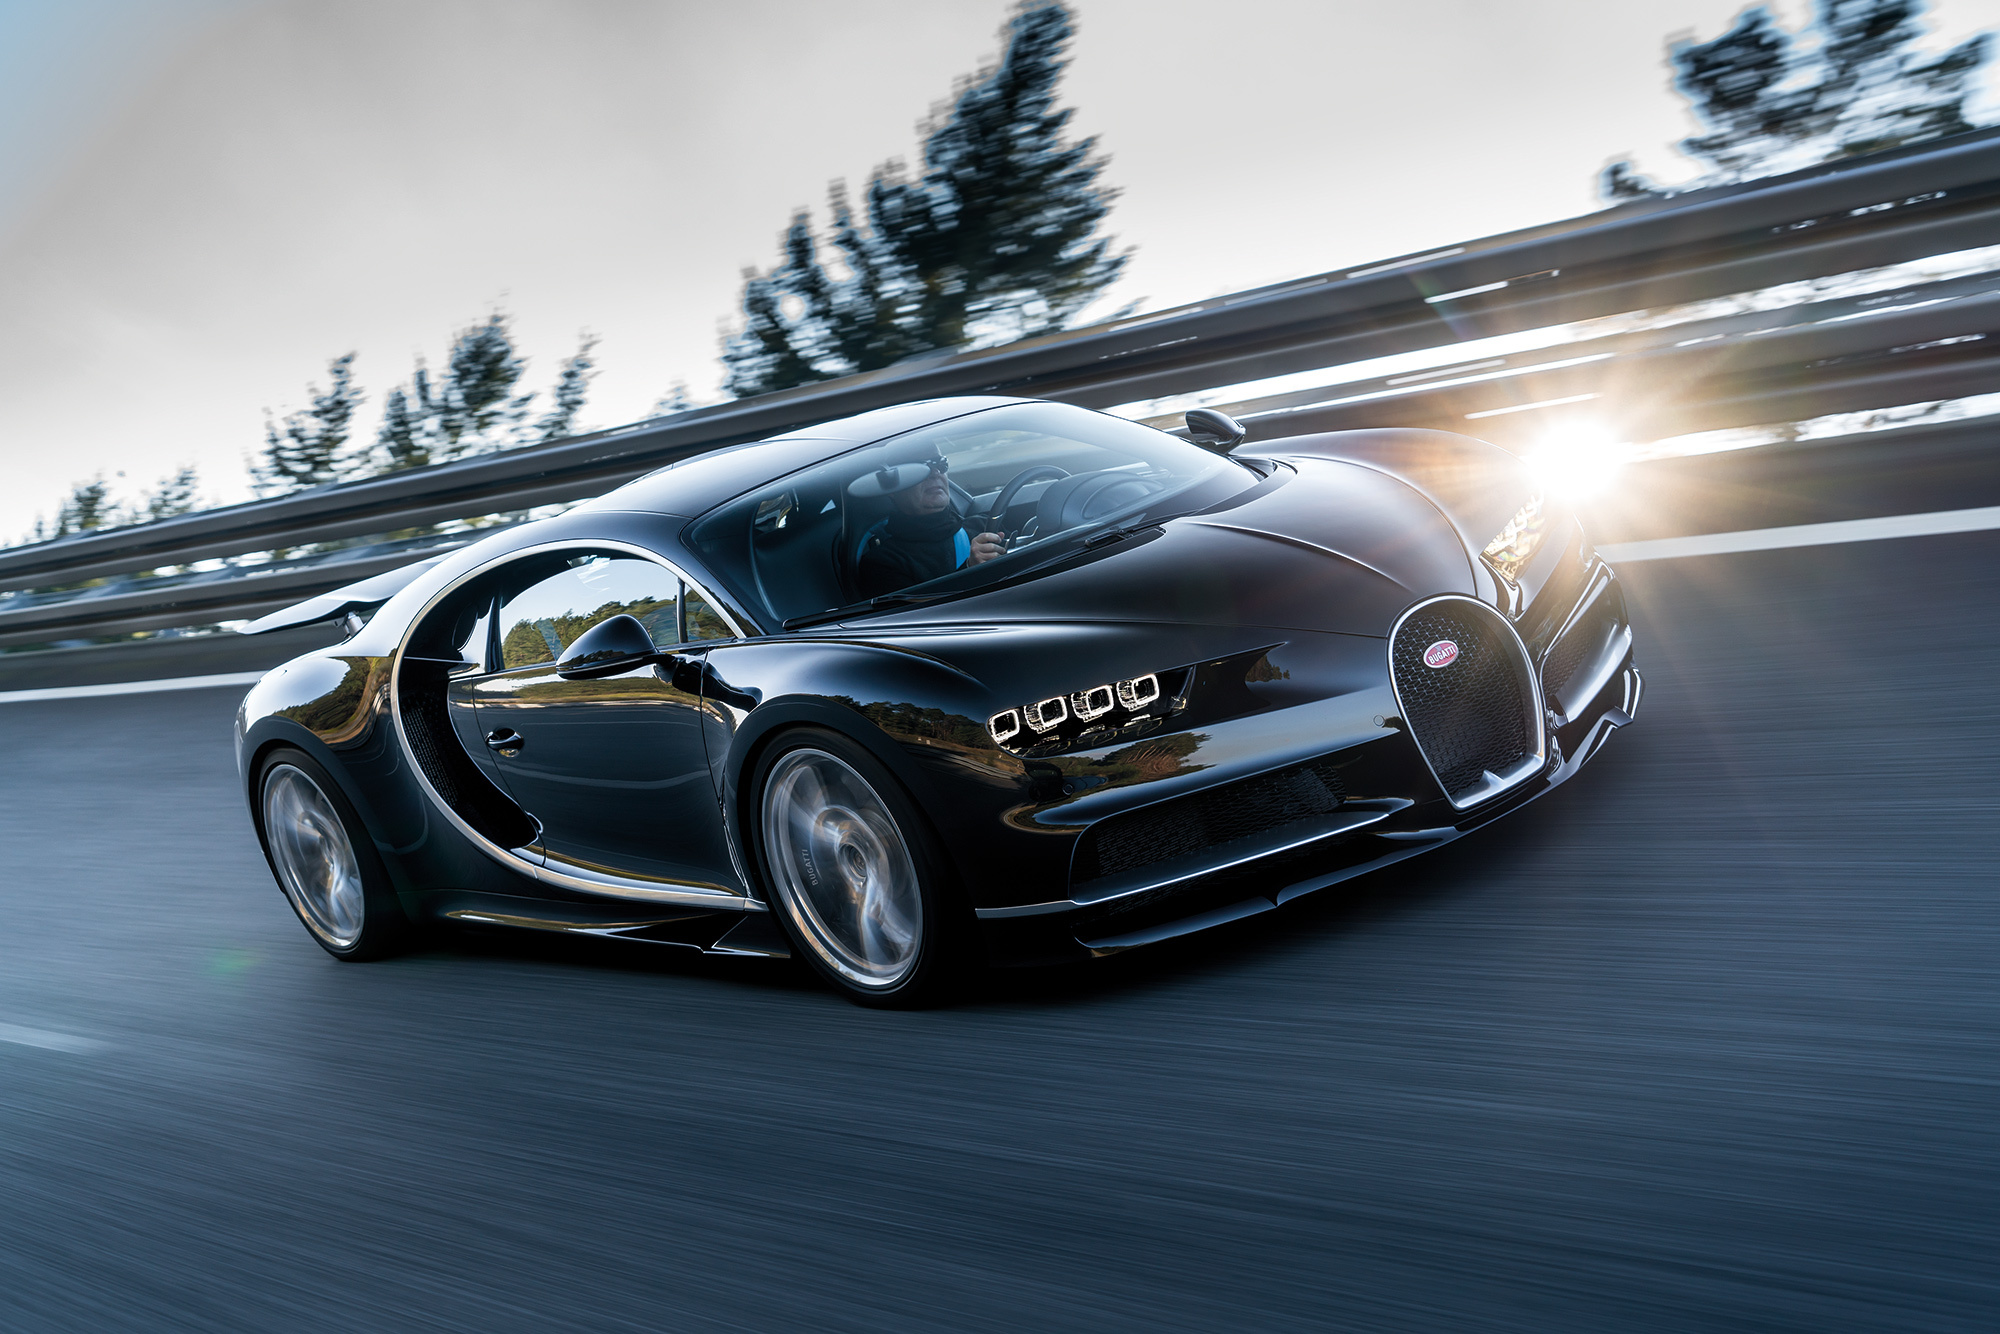 cozy bugatti veyron top speed 434 km h top gear. Black Bedroom Furniture Sets. Home Design Ideas